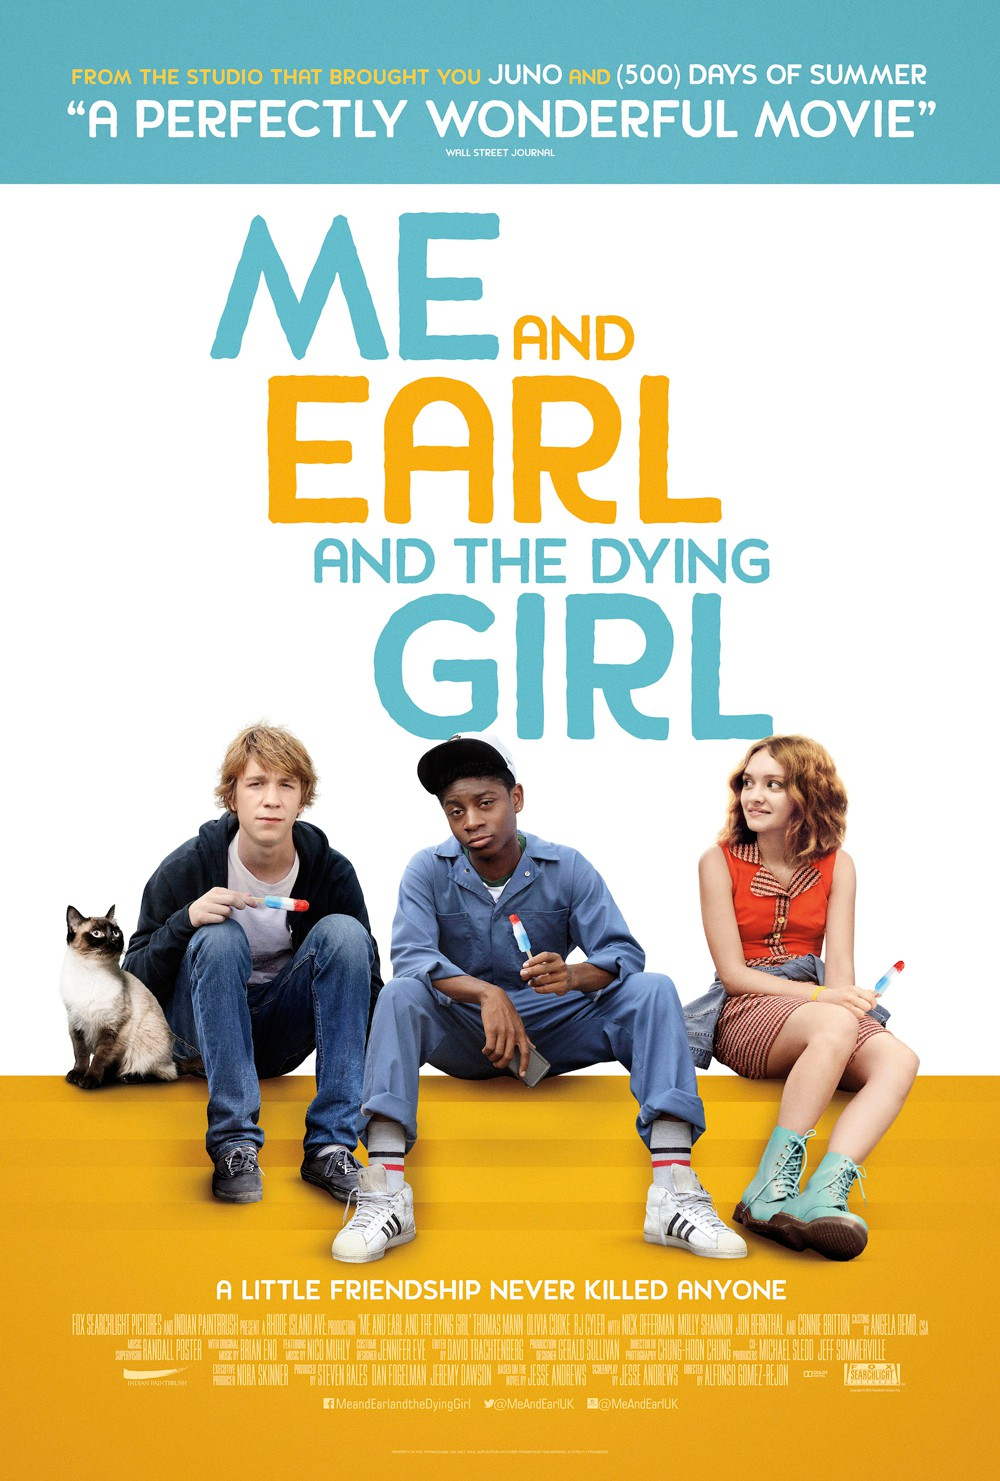 3 - Me, Earl and the Dying Girl